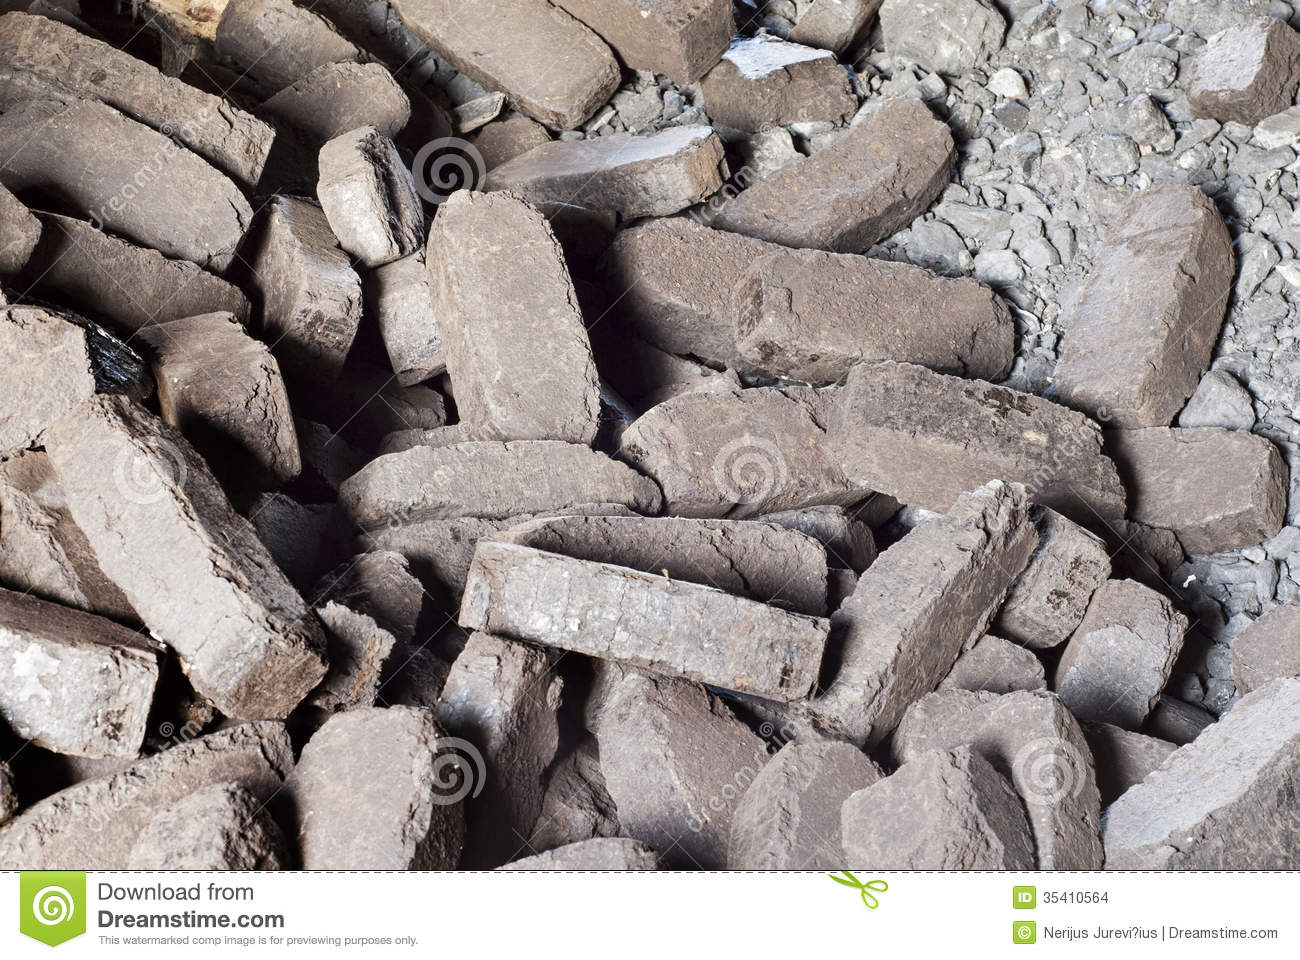 Peat briquettes background